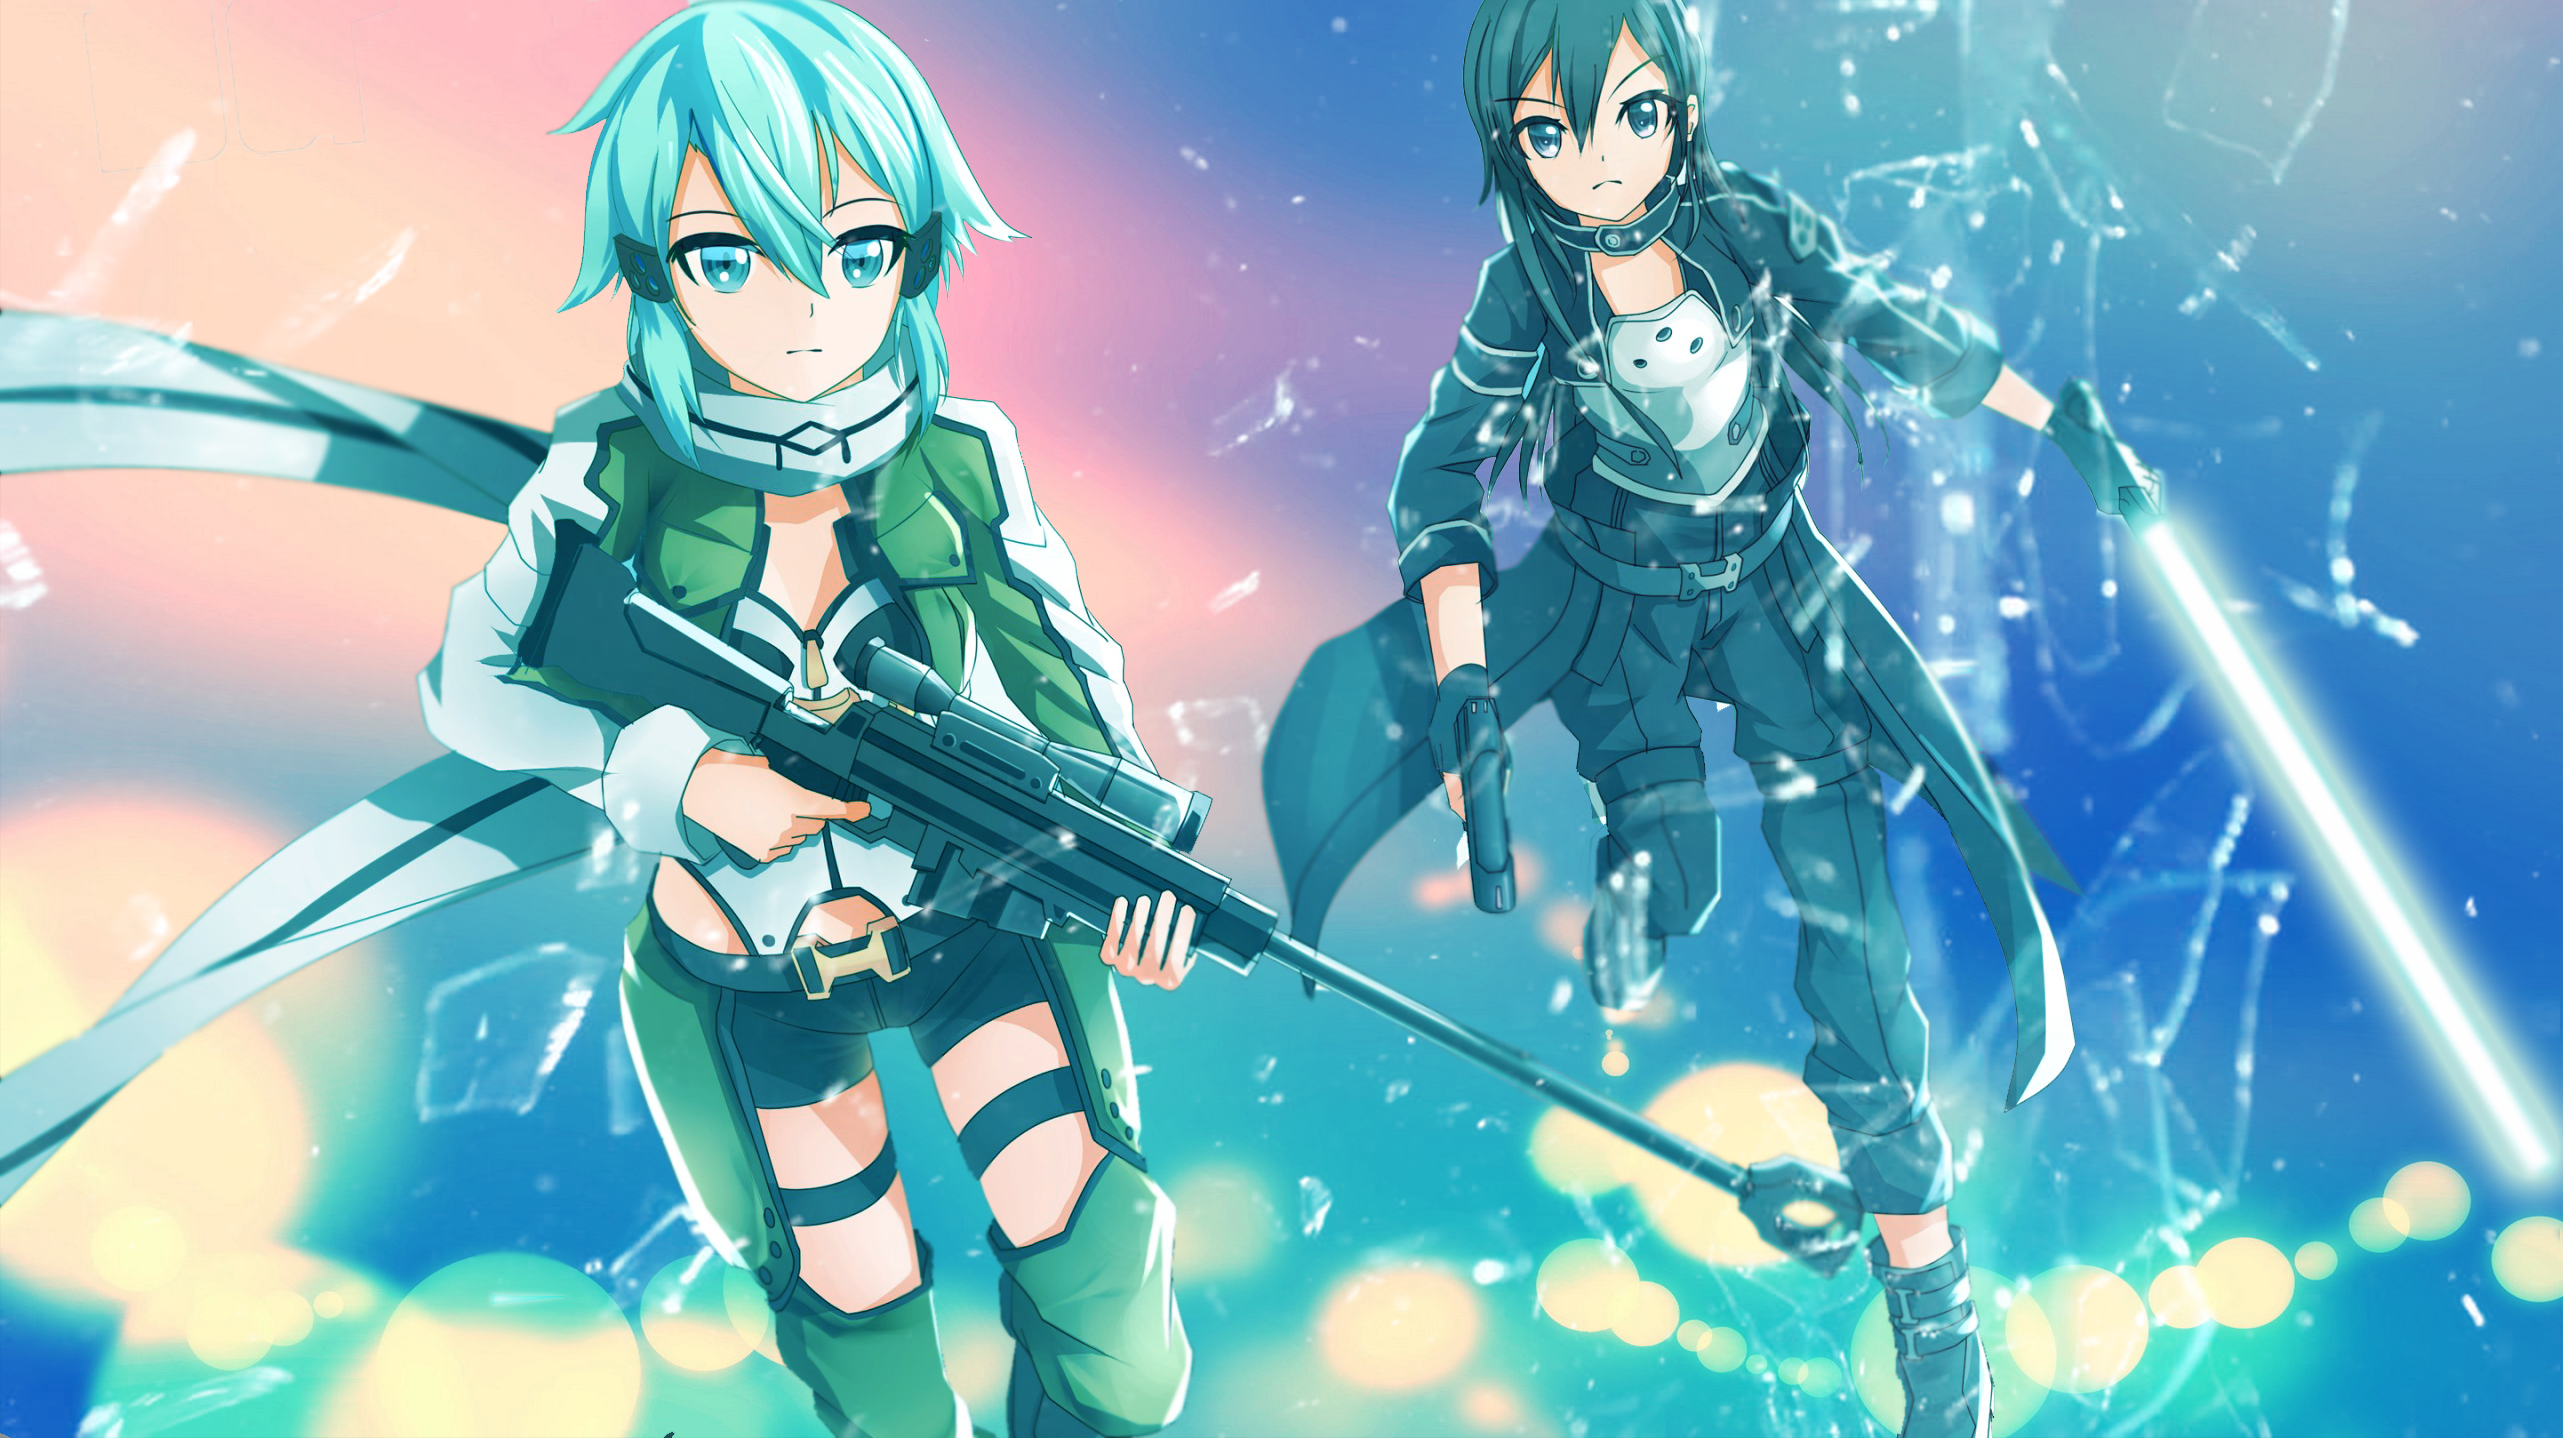 Sao 2 wallpaper wallpapersafari for Deviantart wallpaper